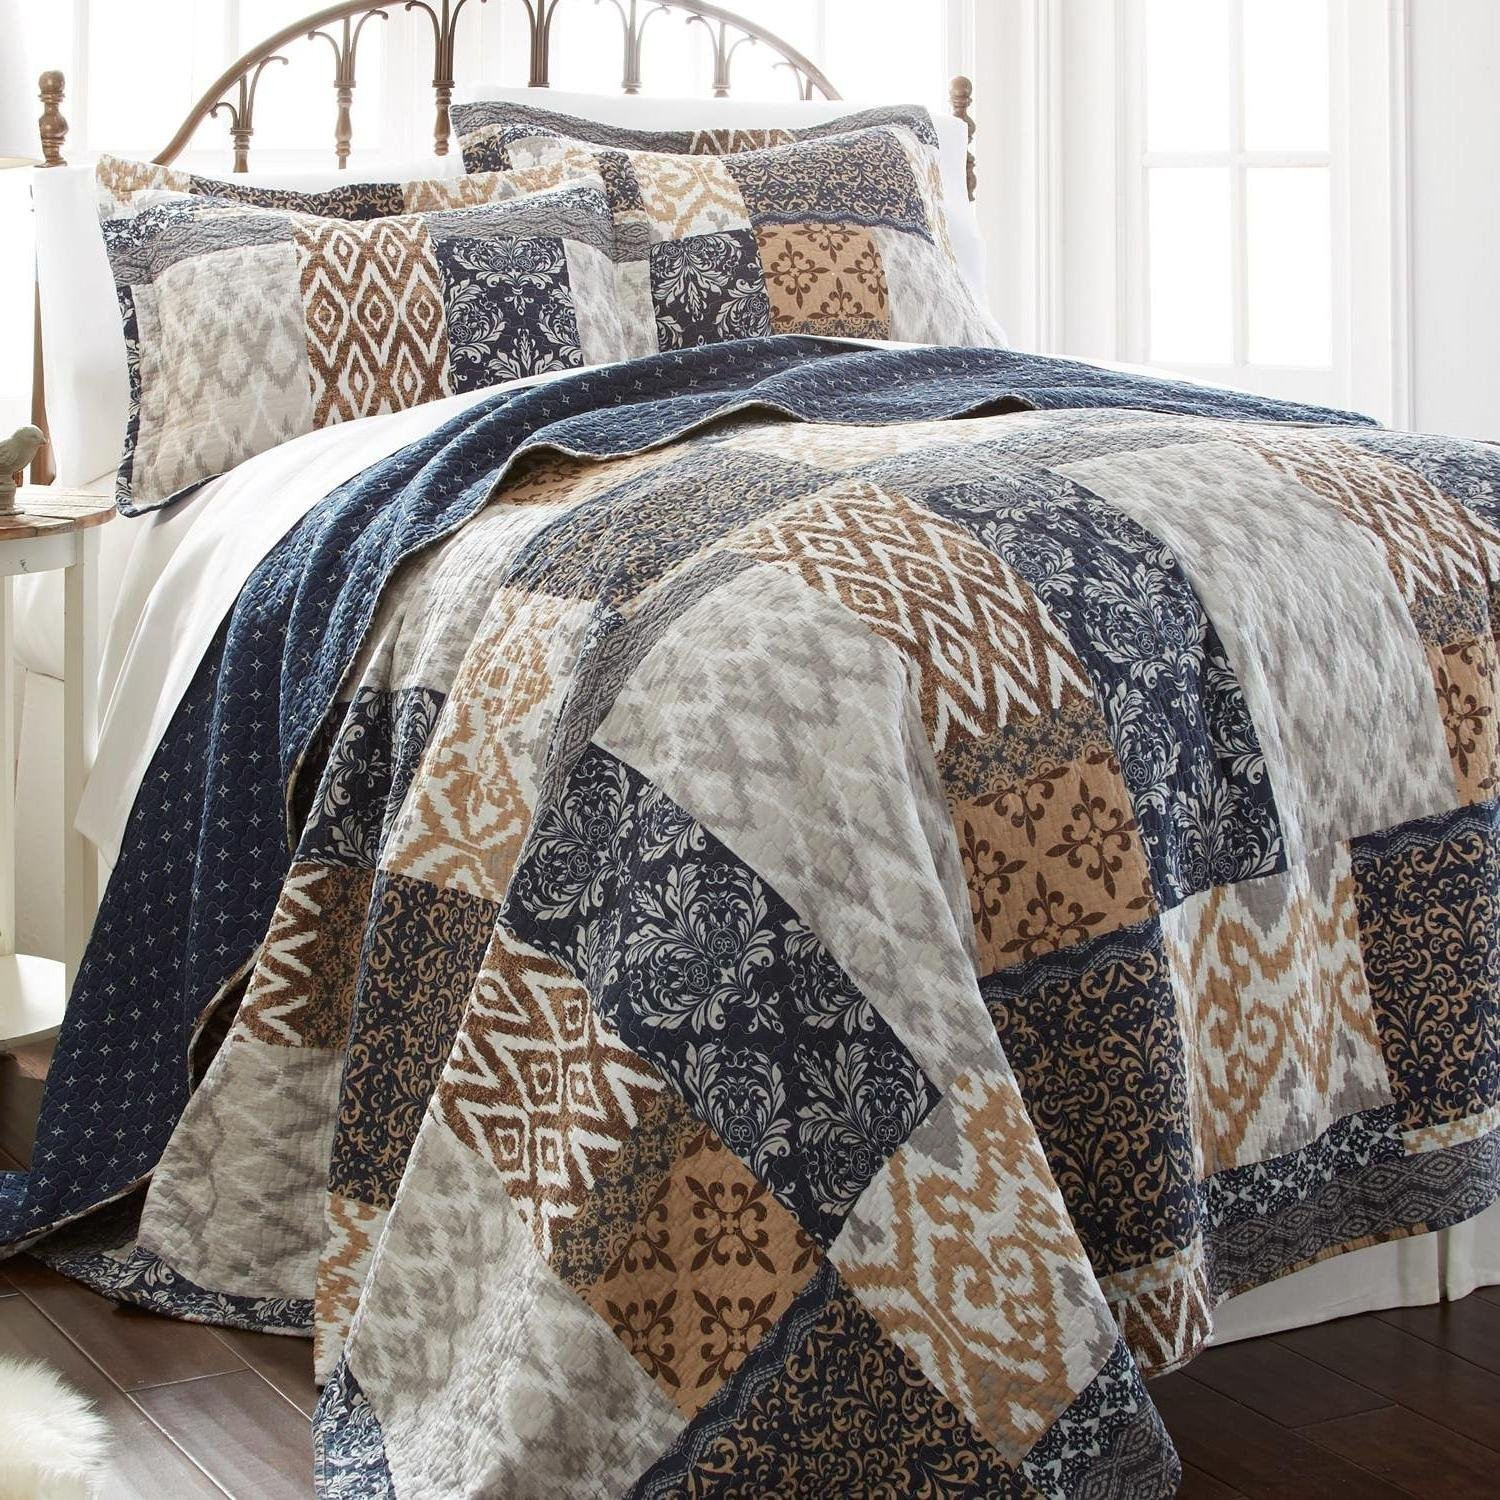 MISC 3pc Brown Blue Tan White King Quilt Set, Cotton, Geometric Damask Patchwork Themed Bedding Navy Grey Diamond Bohemian BohoTrendy Cottage Navy Rustic Pretty Vintage Stylish